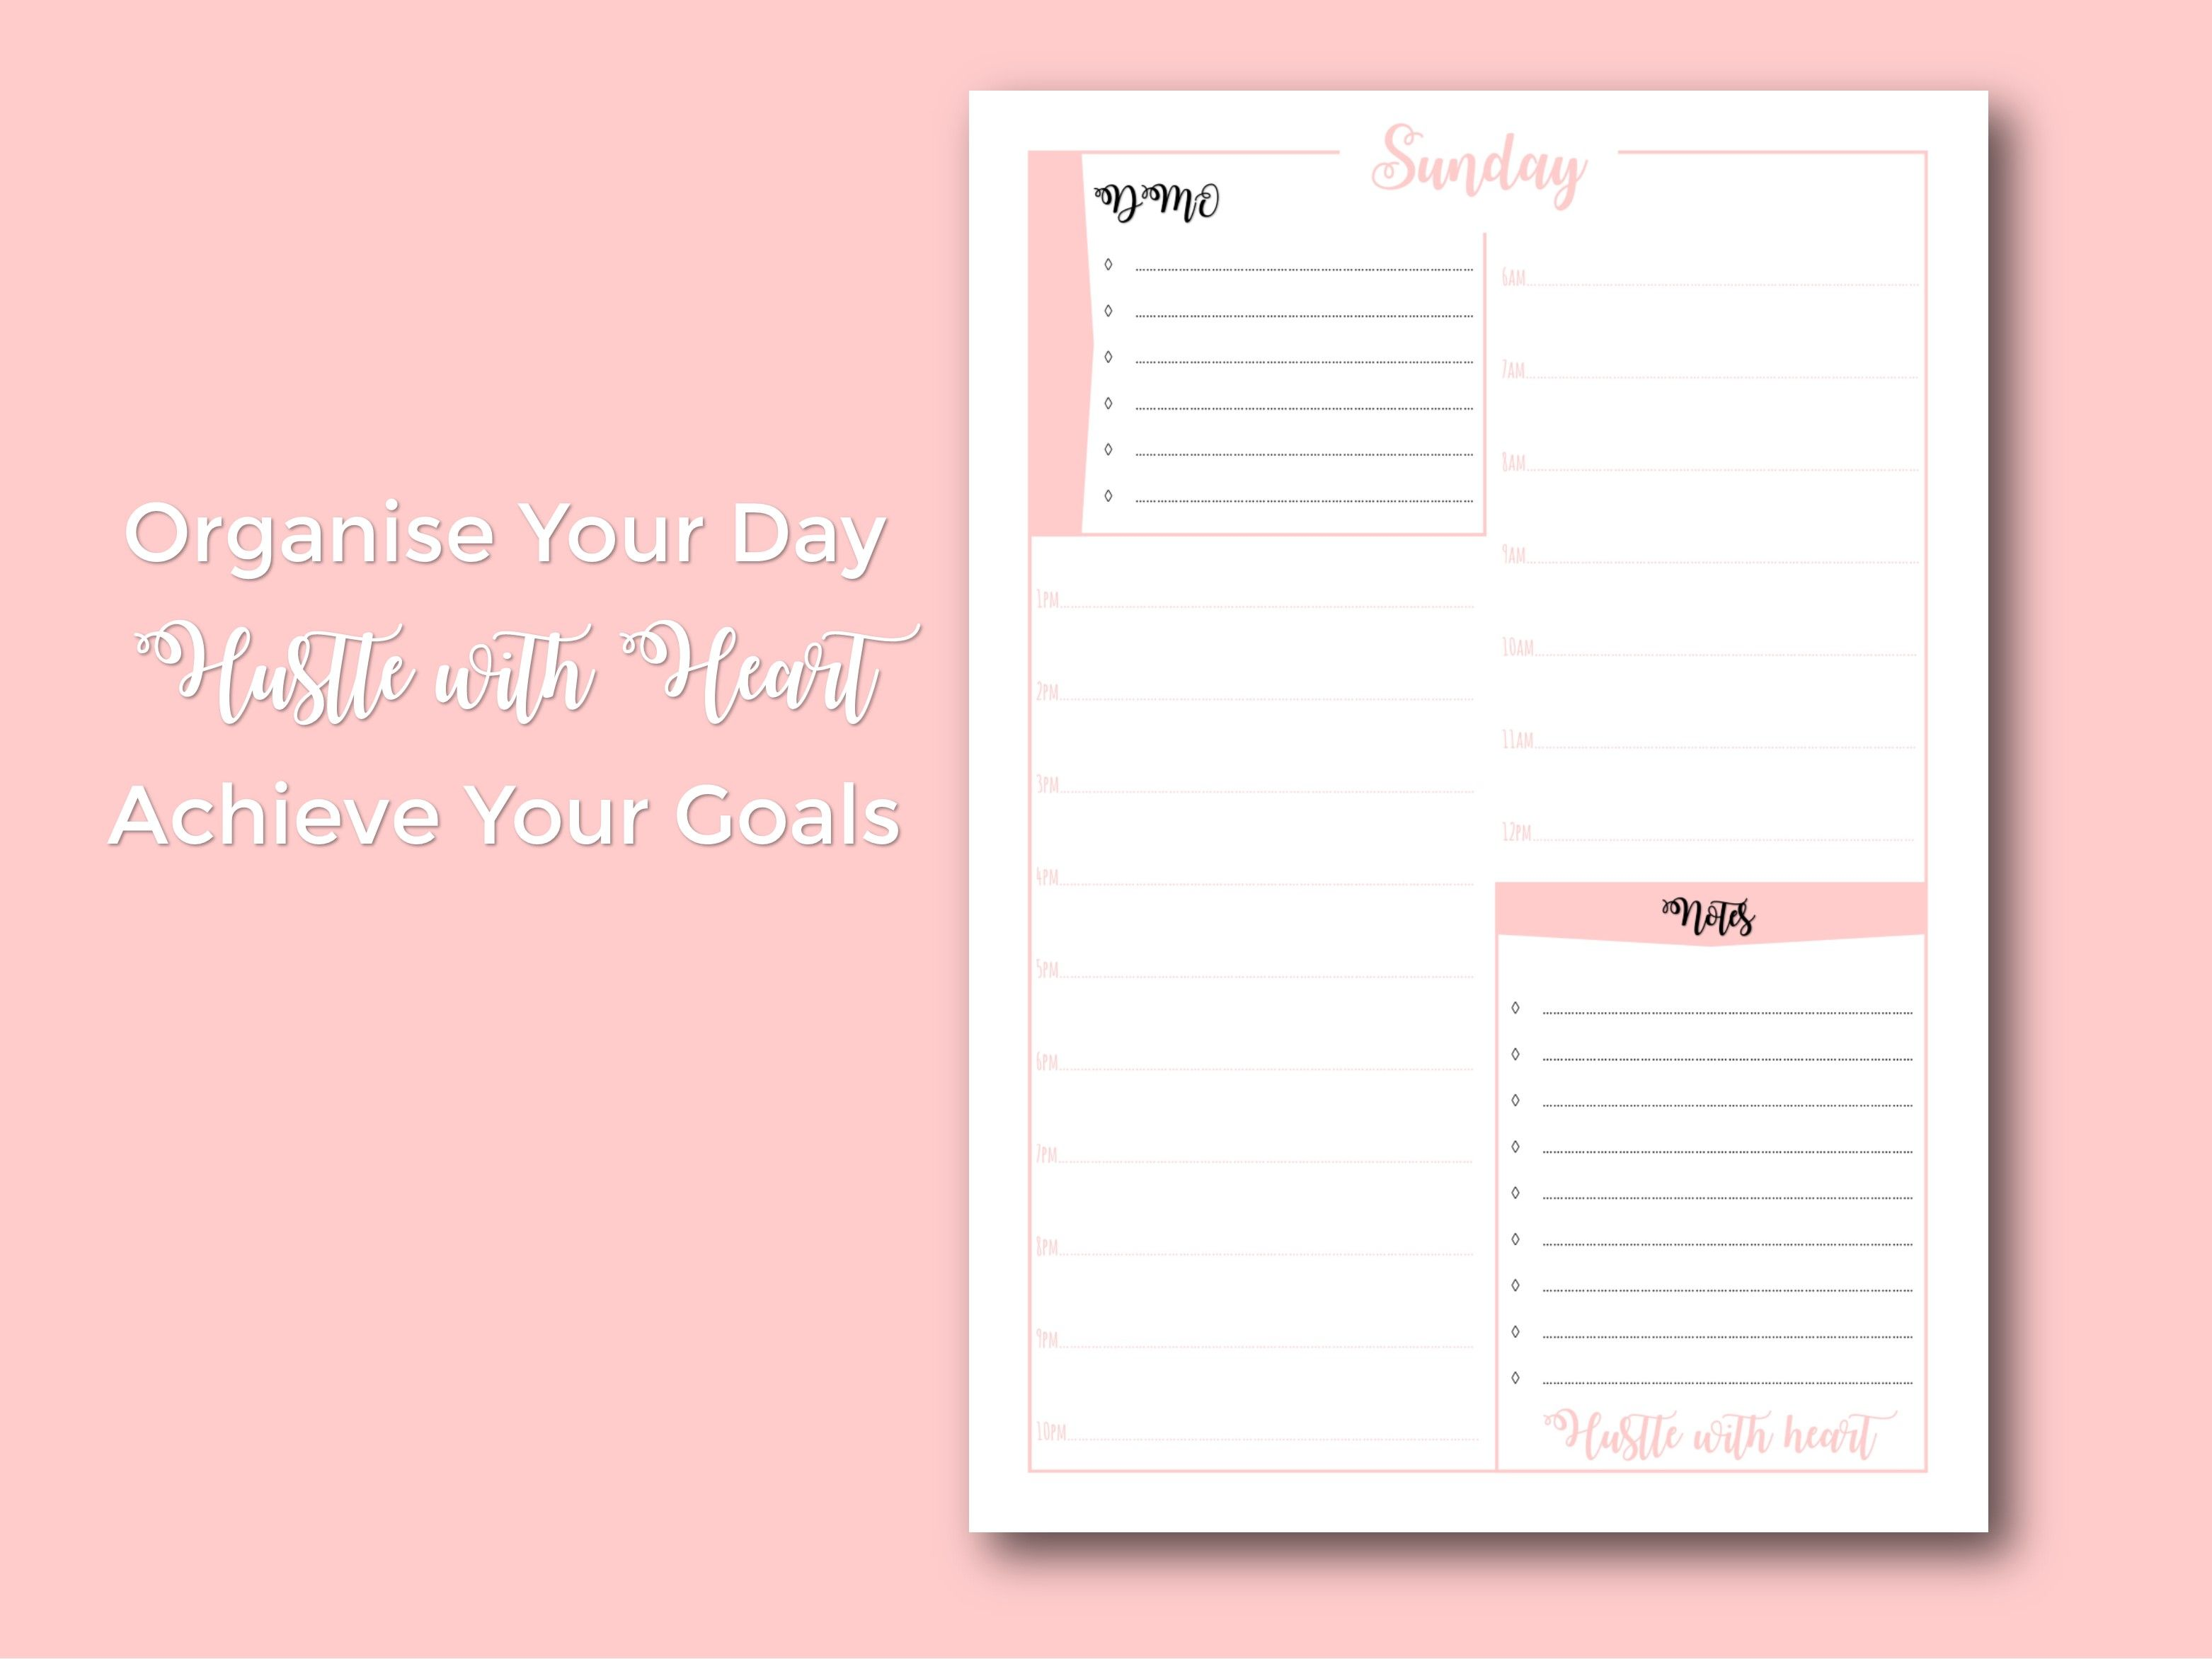 Daily Planner Printable Organise Your Day Hourly Schedule Daily